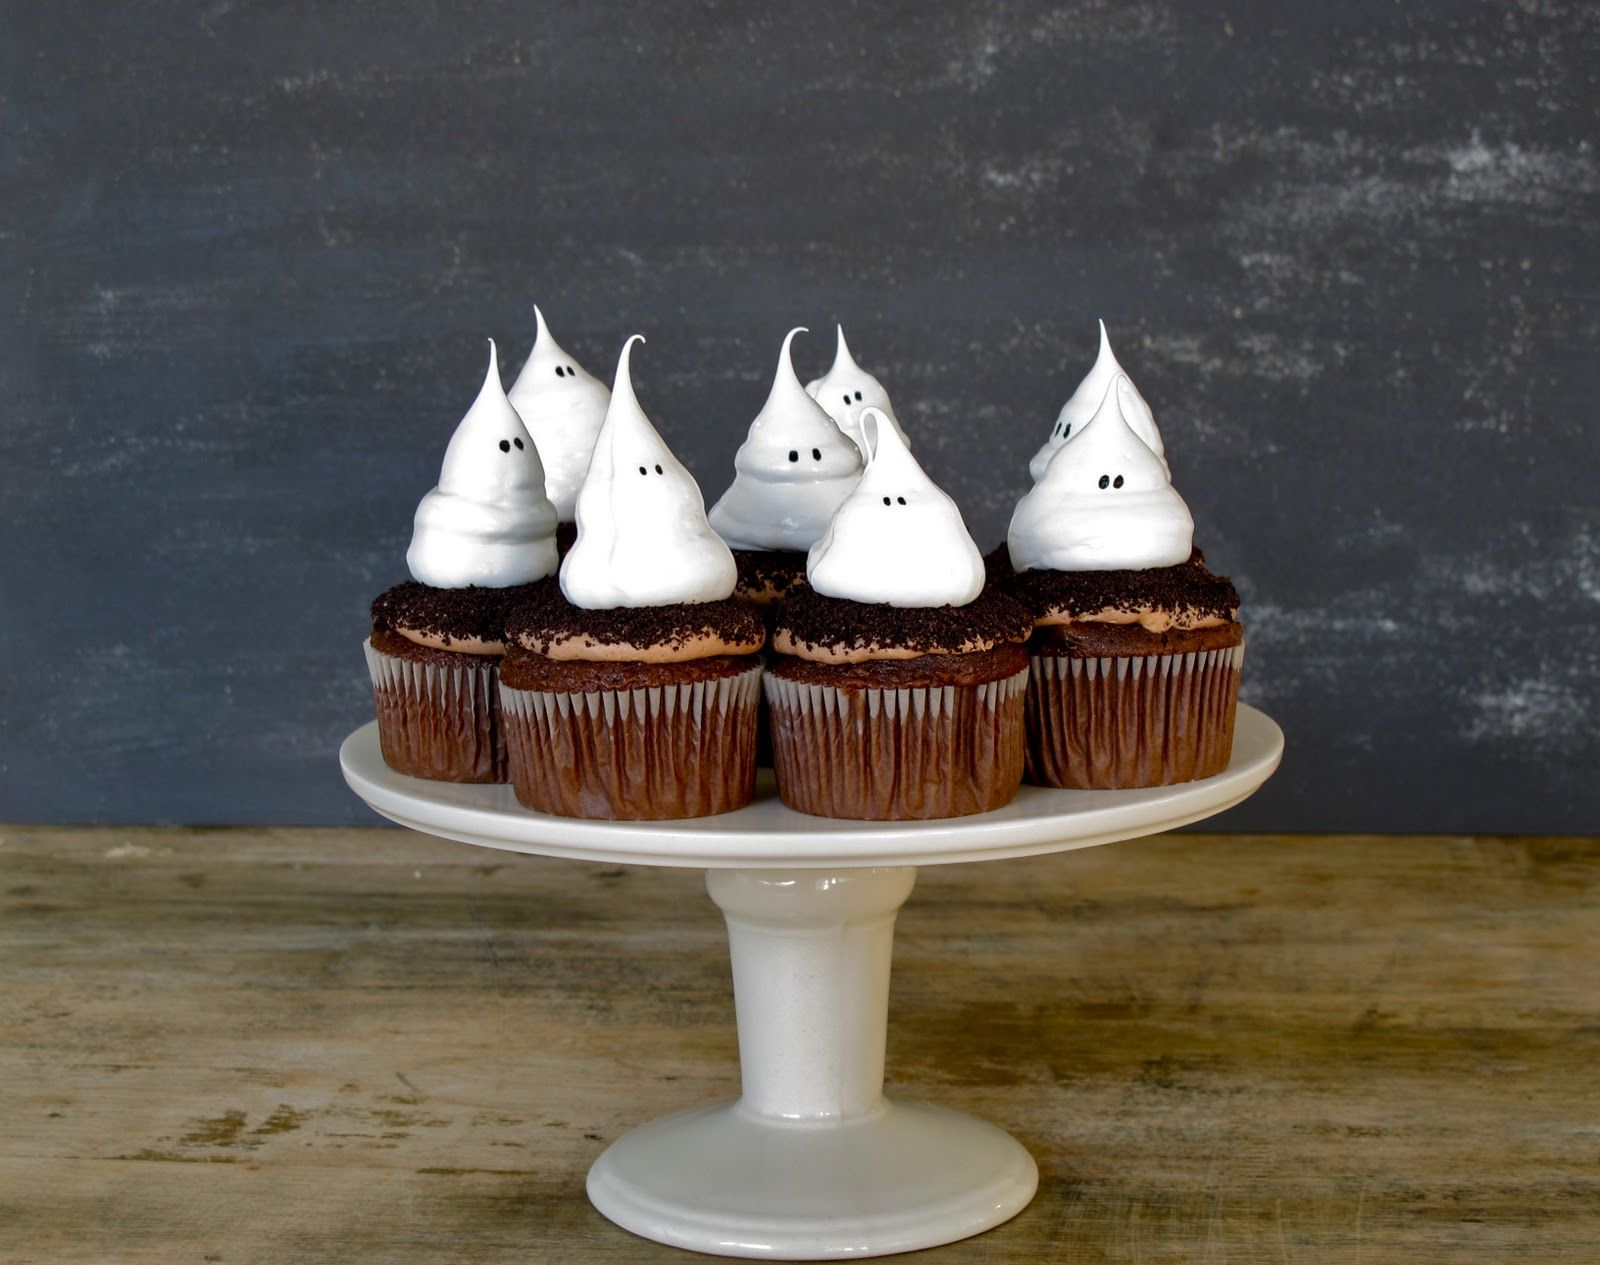 Ghost cupcakes Cake or cupcake decorating ideas Pinterest - Halloween Cake Decorating Ideas